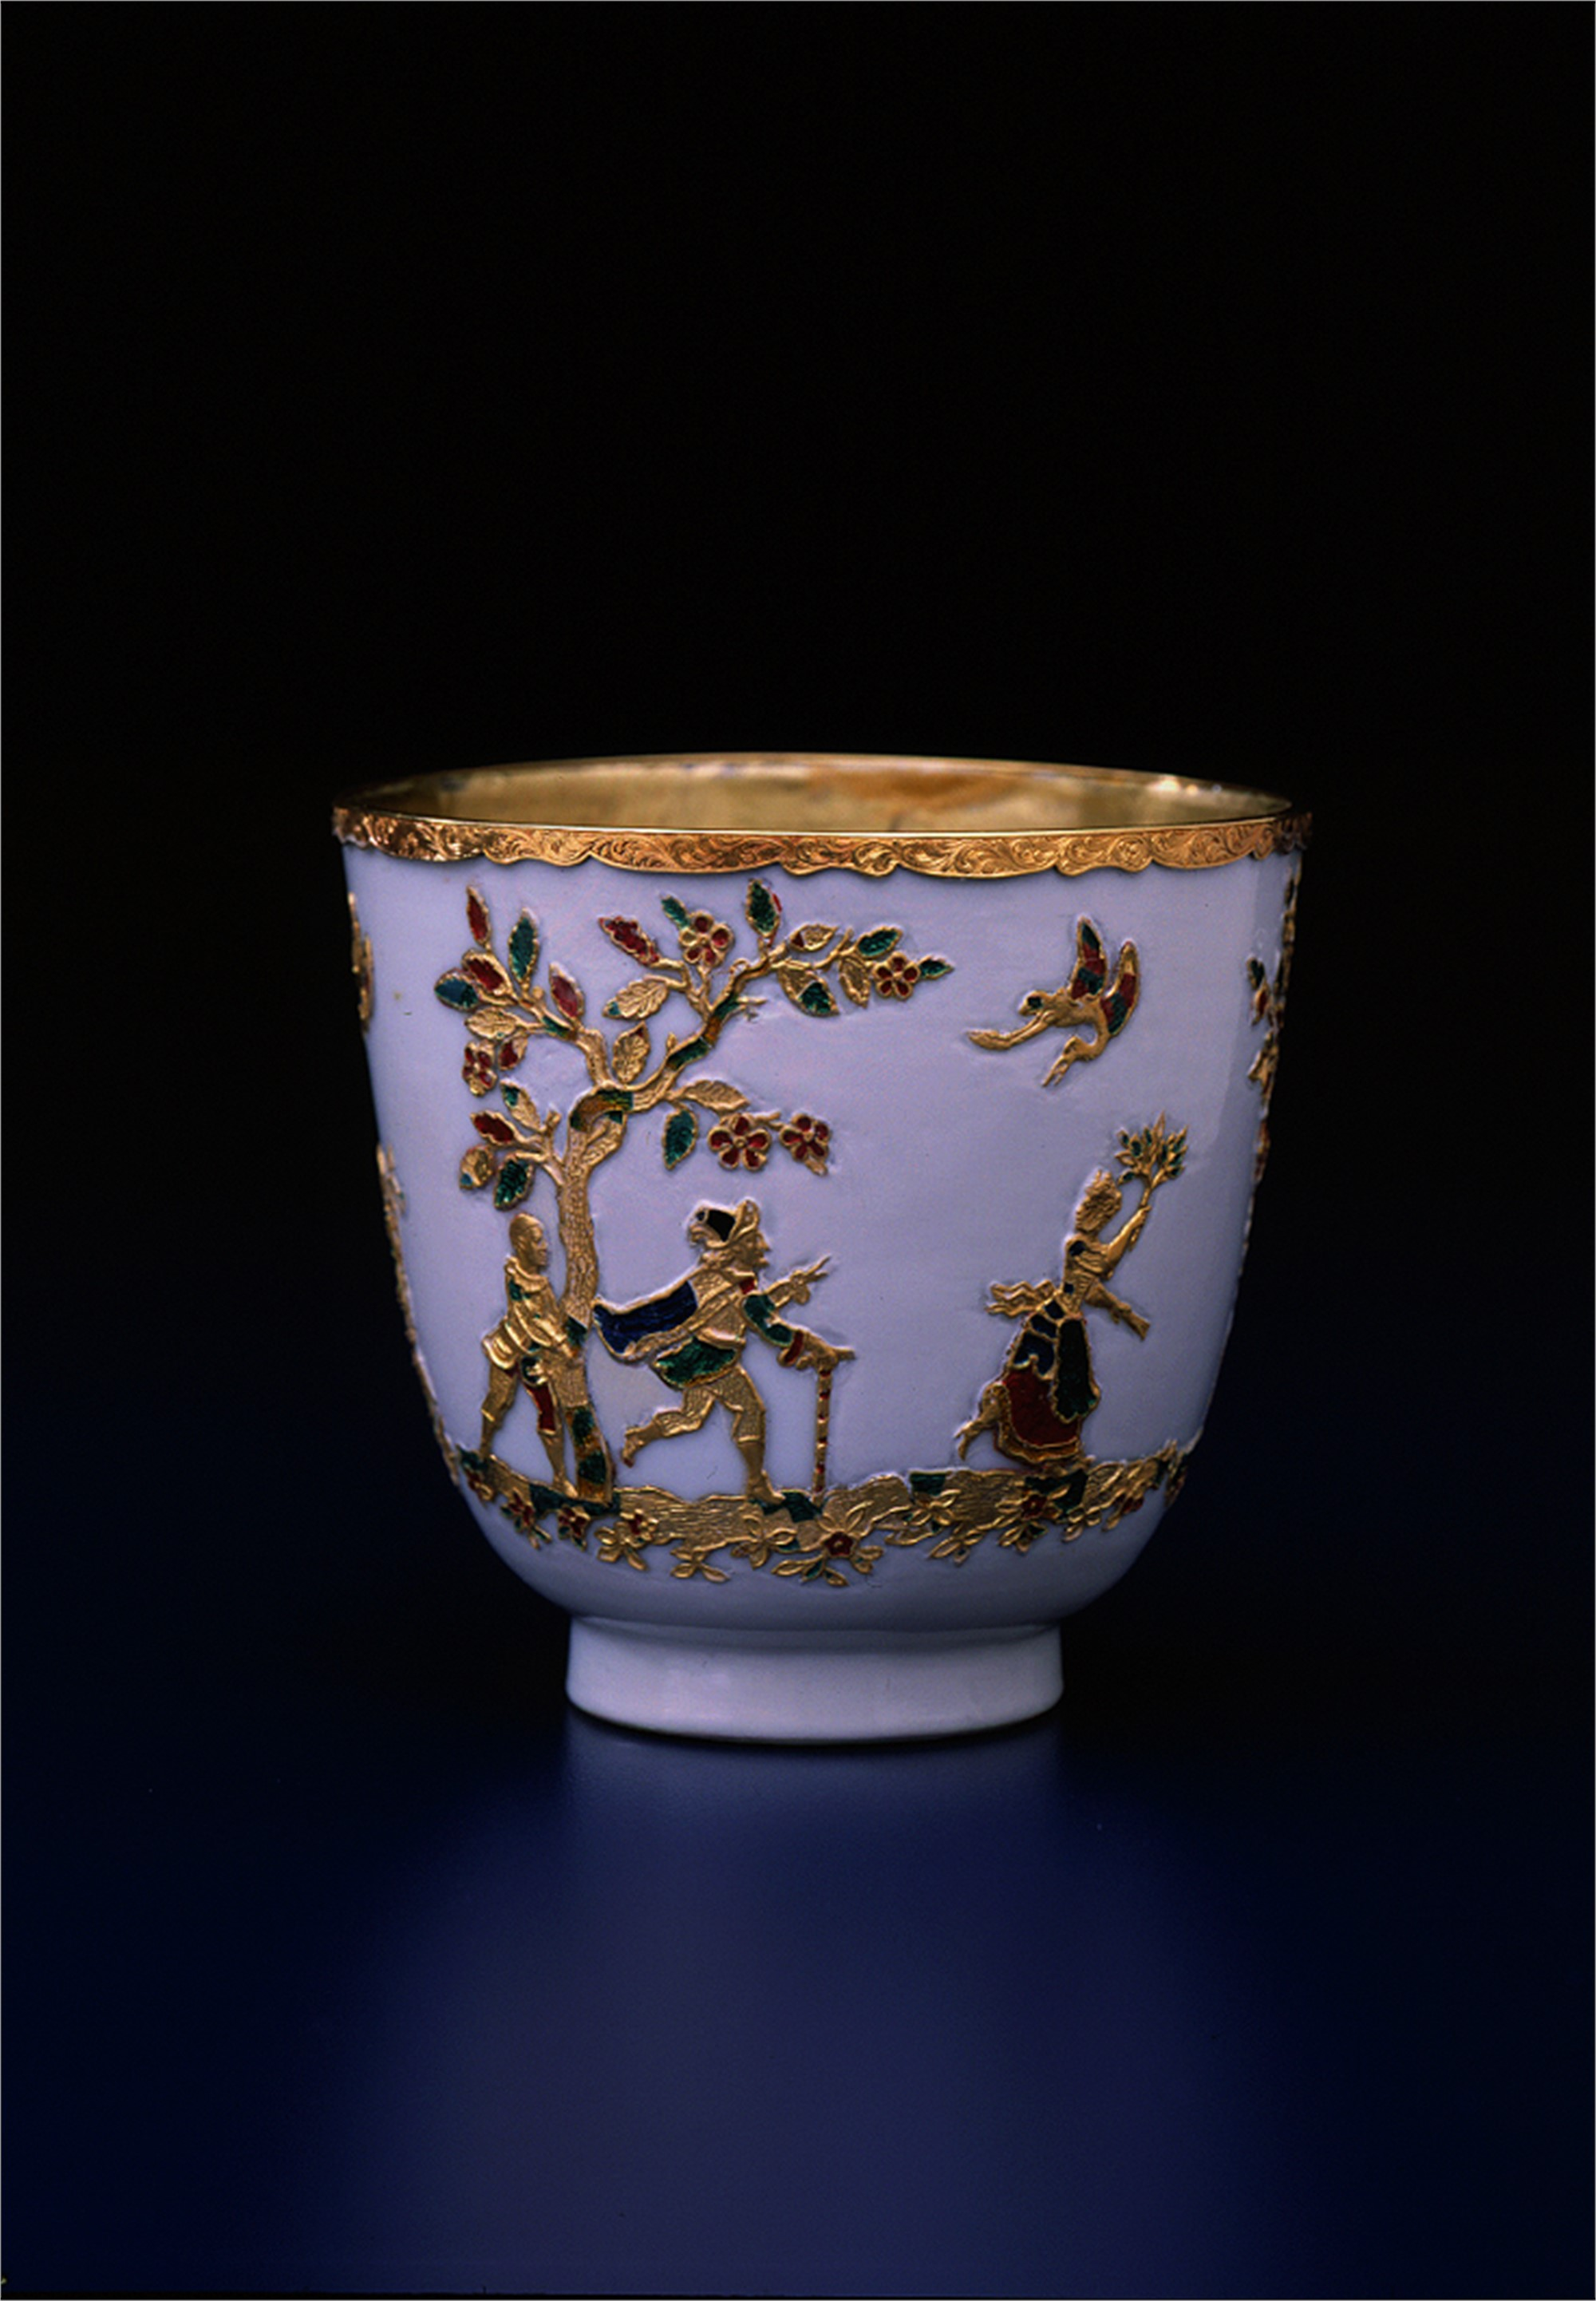 SMALL CUP WITH GOLD DECOR